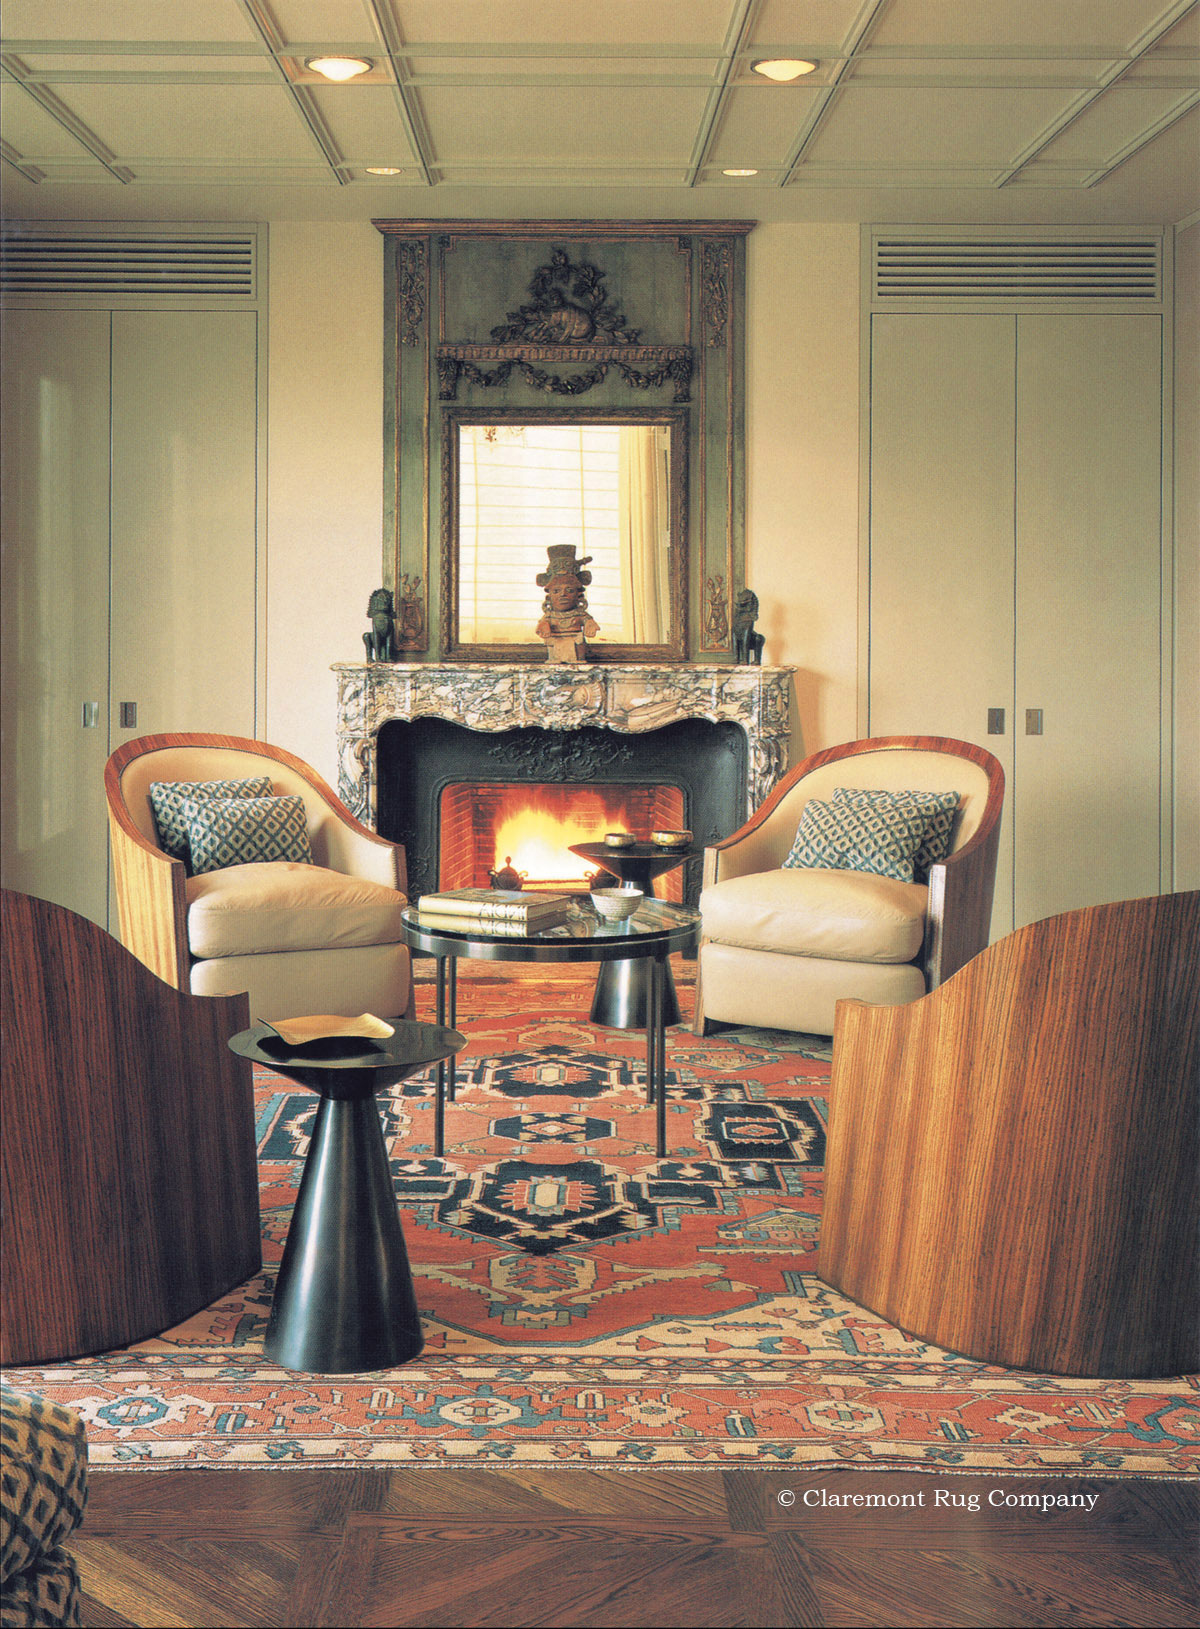 The unusually spacious design of this 150-year-old Serapi highlights the immediately recognizable interest in connoisseurship reflected in this distinctive sitting room. This spectacular carpet harmonizes the Pre-Columbian artifacts, Napoleonic mantle and mirror and elegant designer chairs.